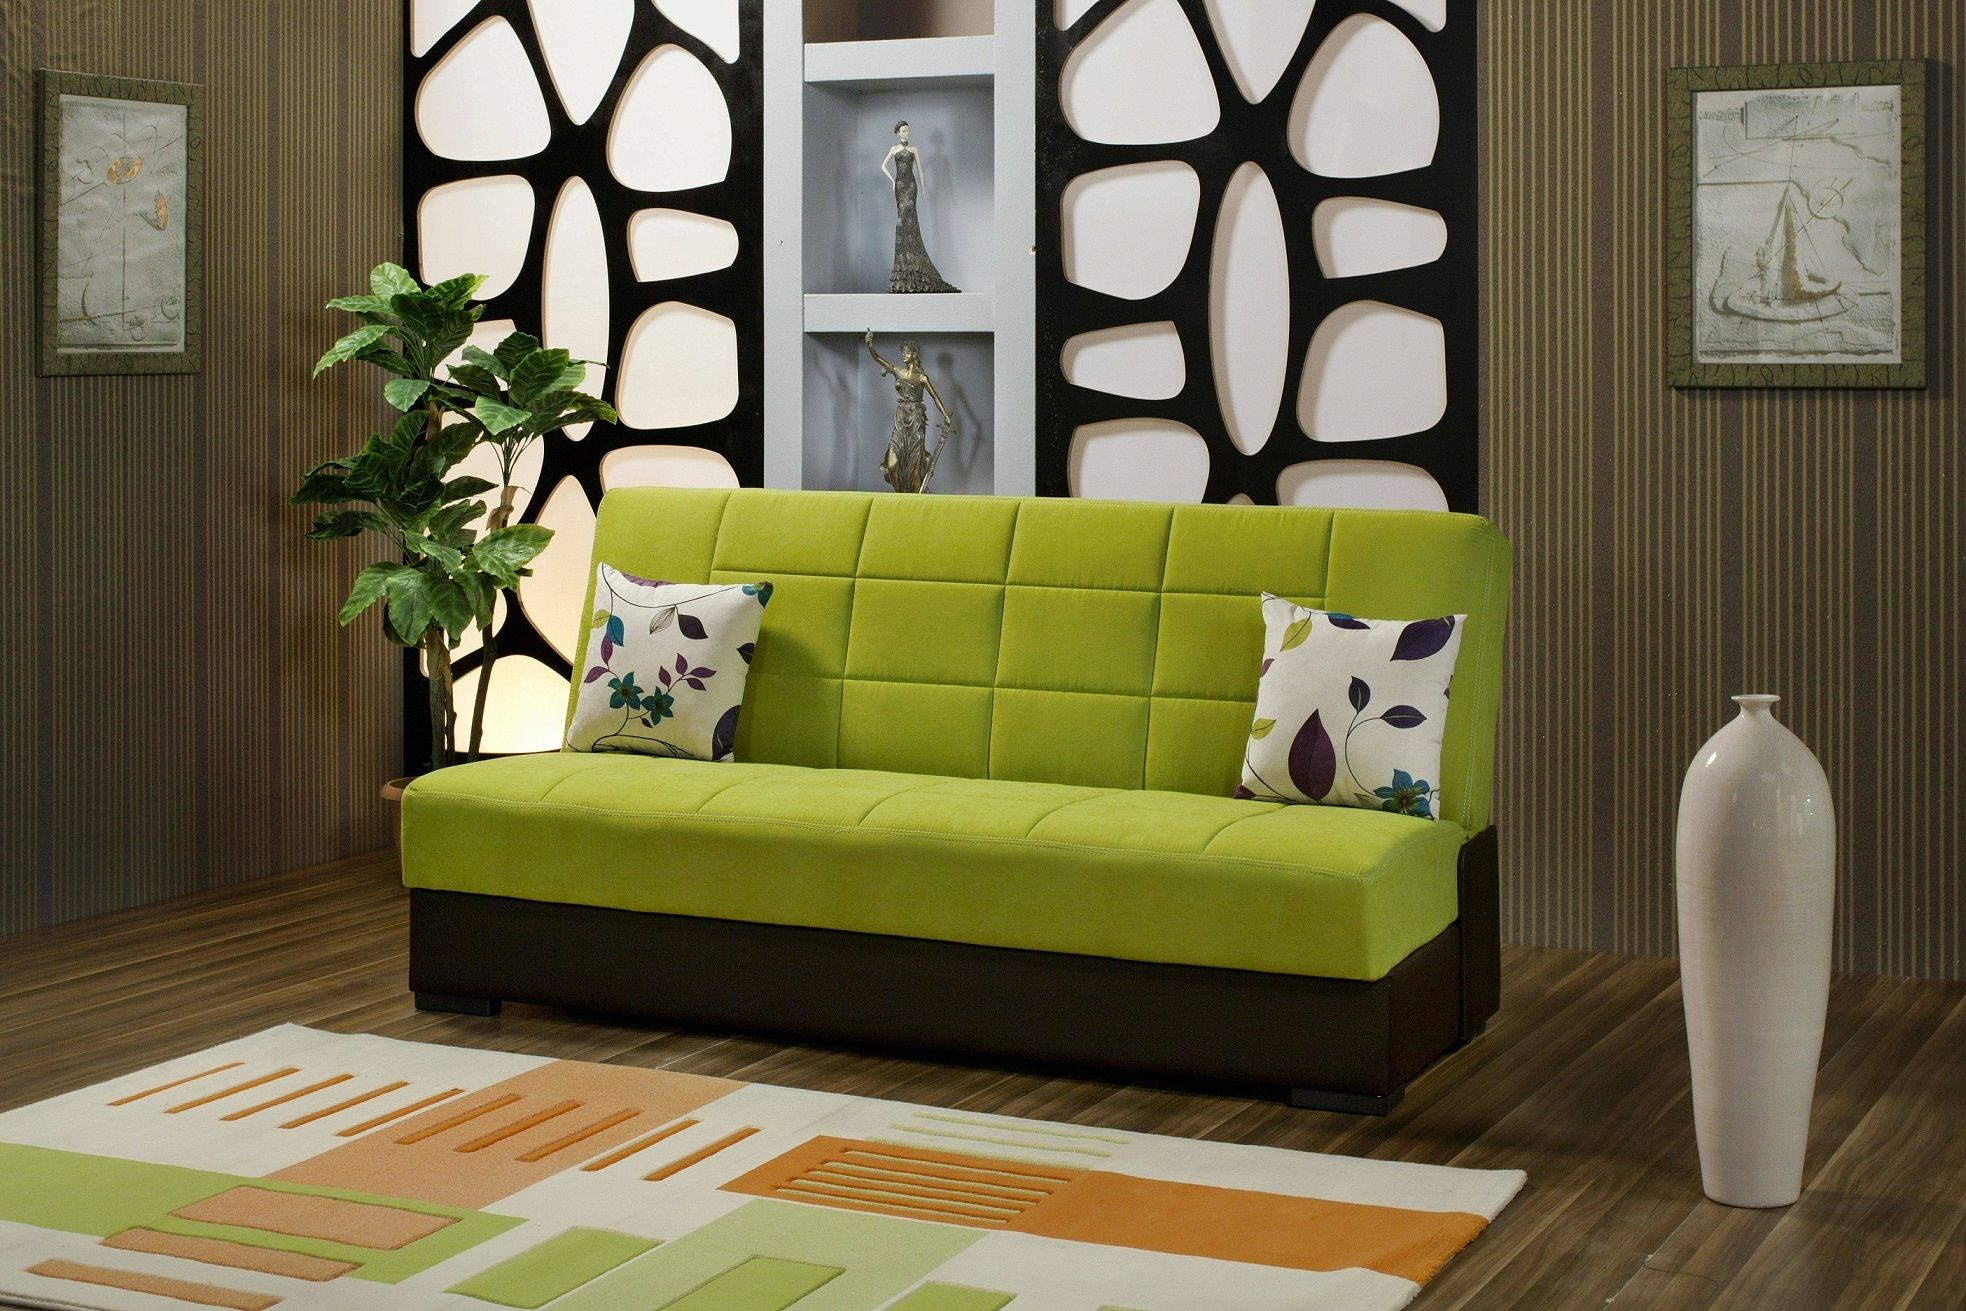 Furniture Cool Green Foam Single Sofa Bed Chocolate Wooden Flooring